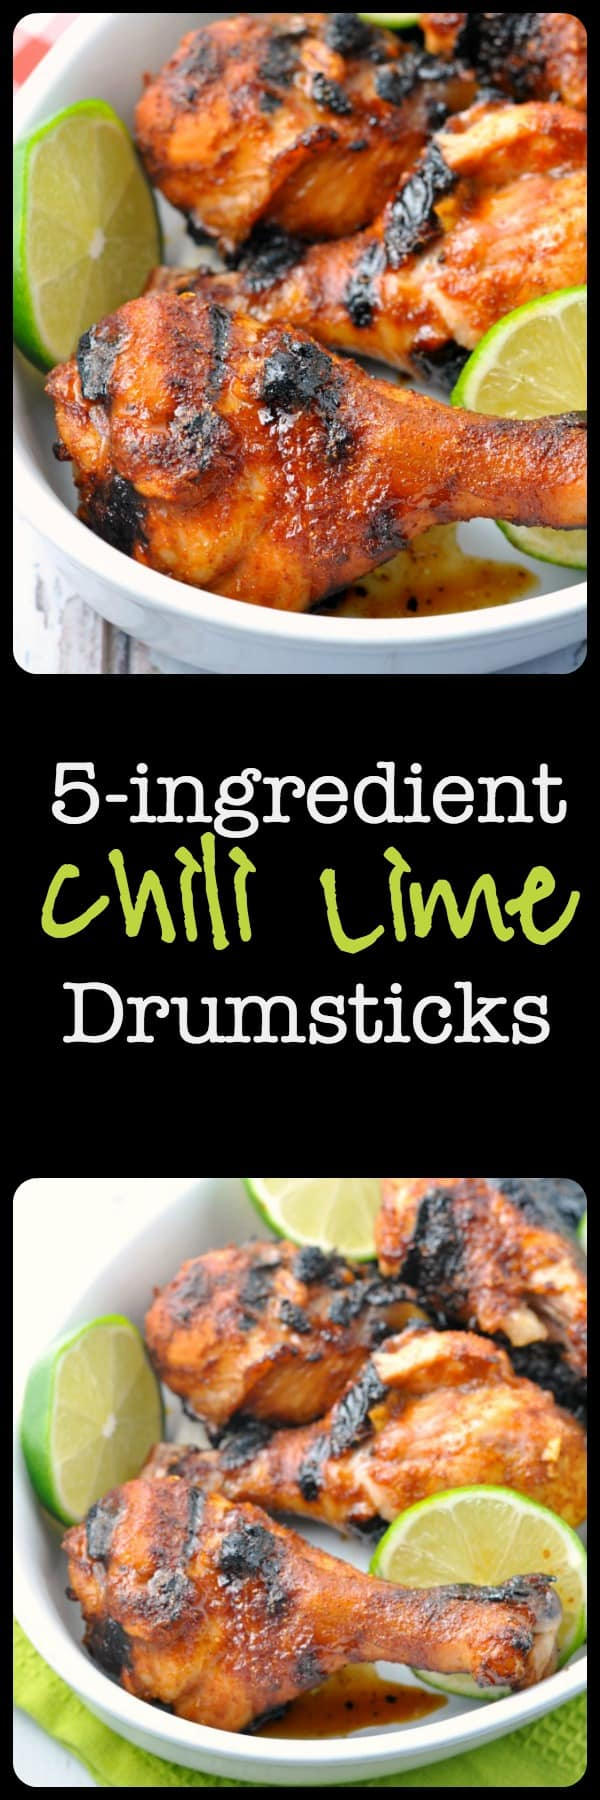 Paleo 5-Ingredient Chili Lime Drumsticks. Quick and easy: chili, lime, garlic, honey. |www.flavourandsavour.com